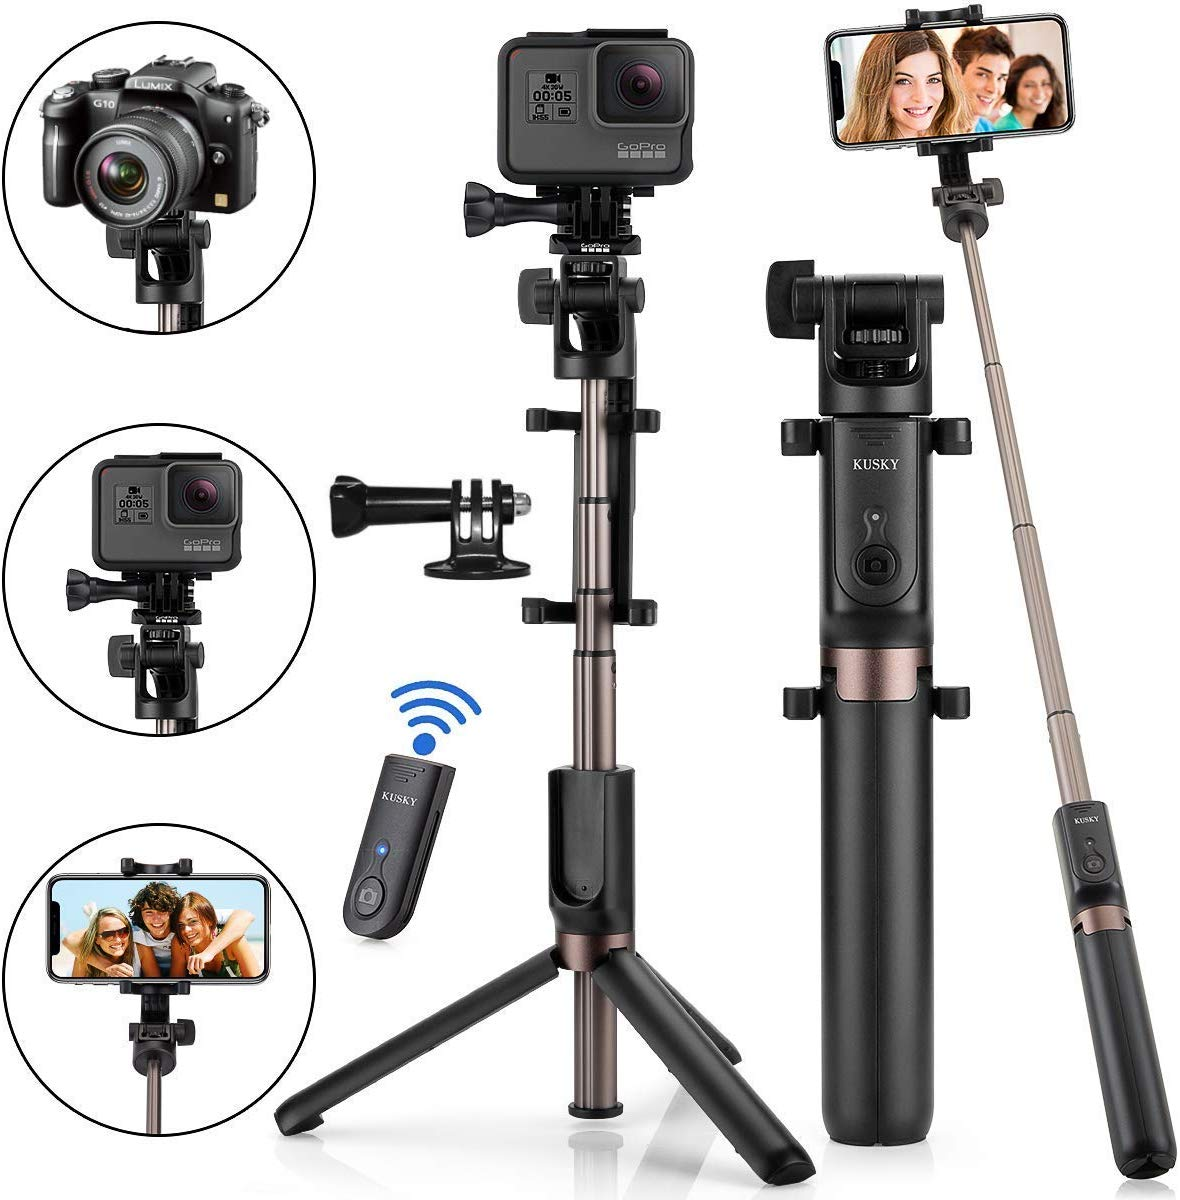 http://KUSKY%20Wireless%20Selfie%20Stick%20with%20Bluetooth%20and%20remote%20control%20supported%20system.